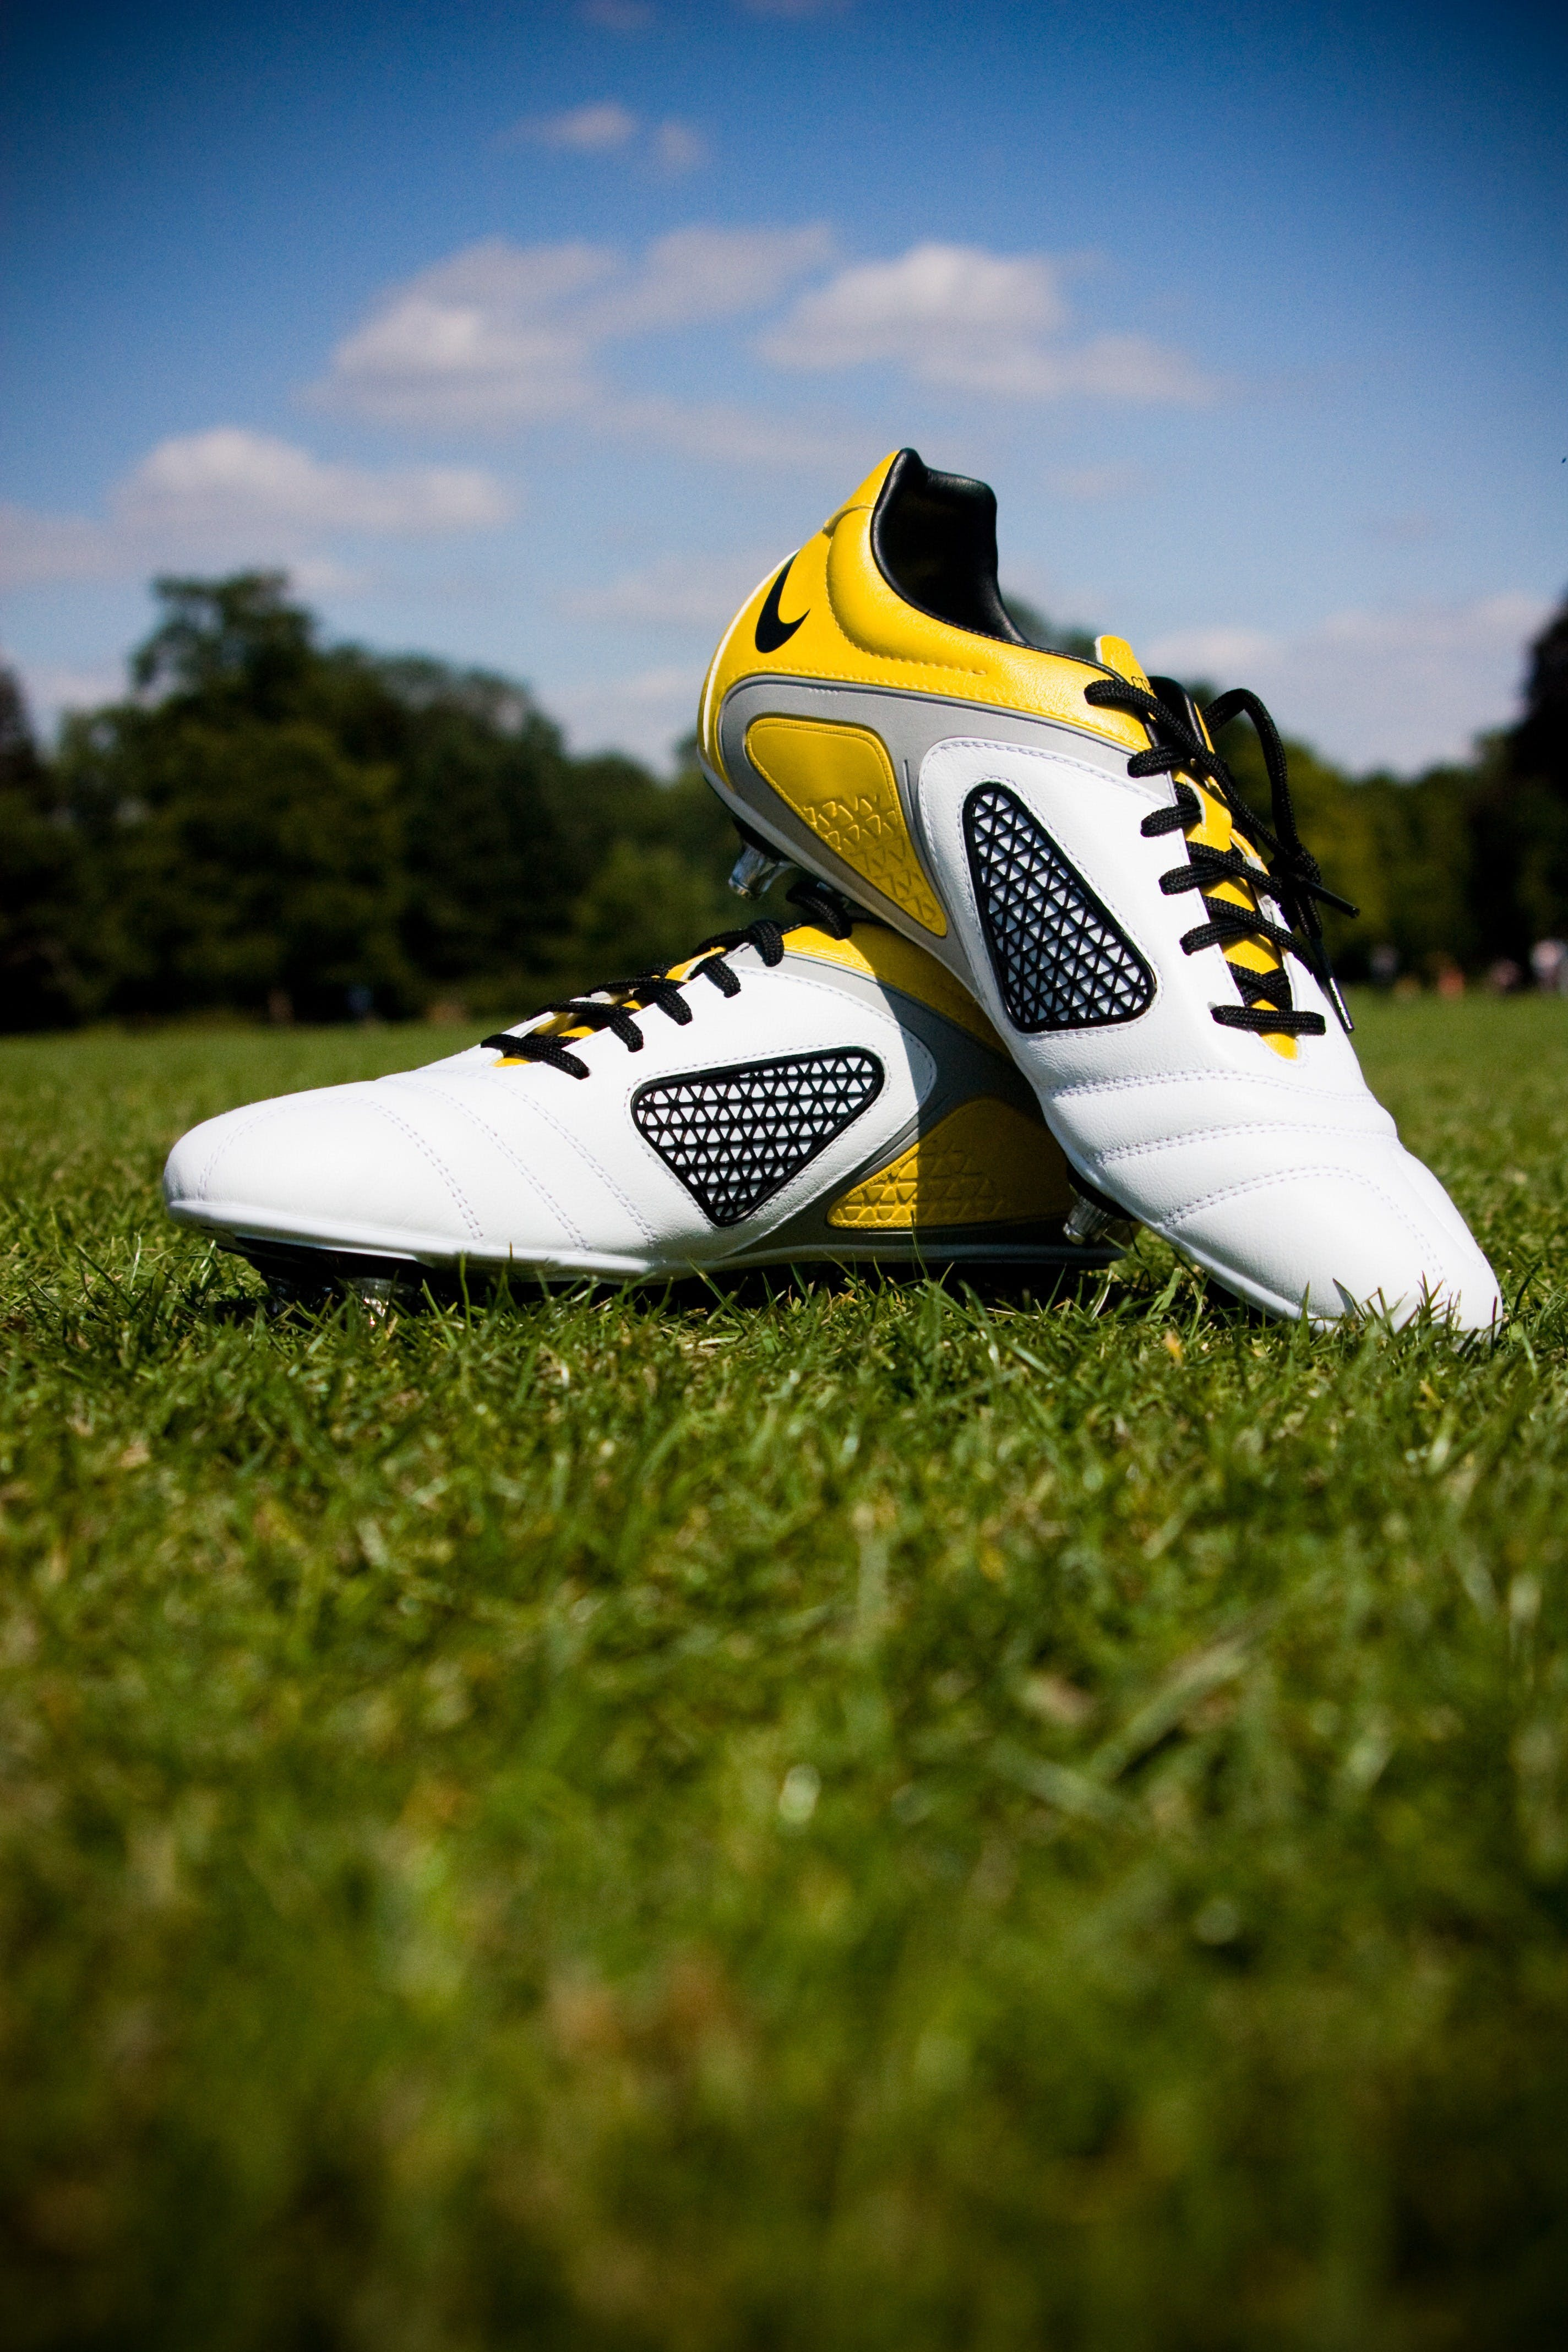 Pair of White-and-yellow Nike Cleats